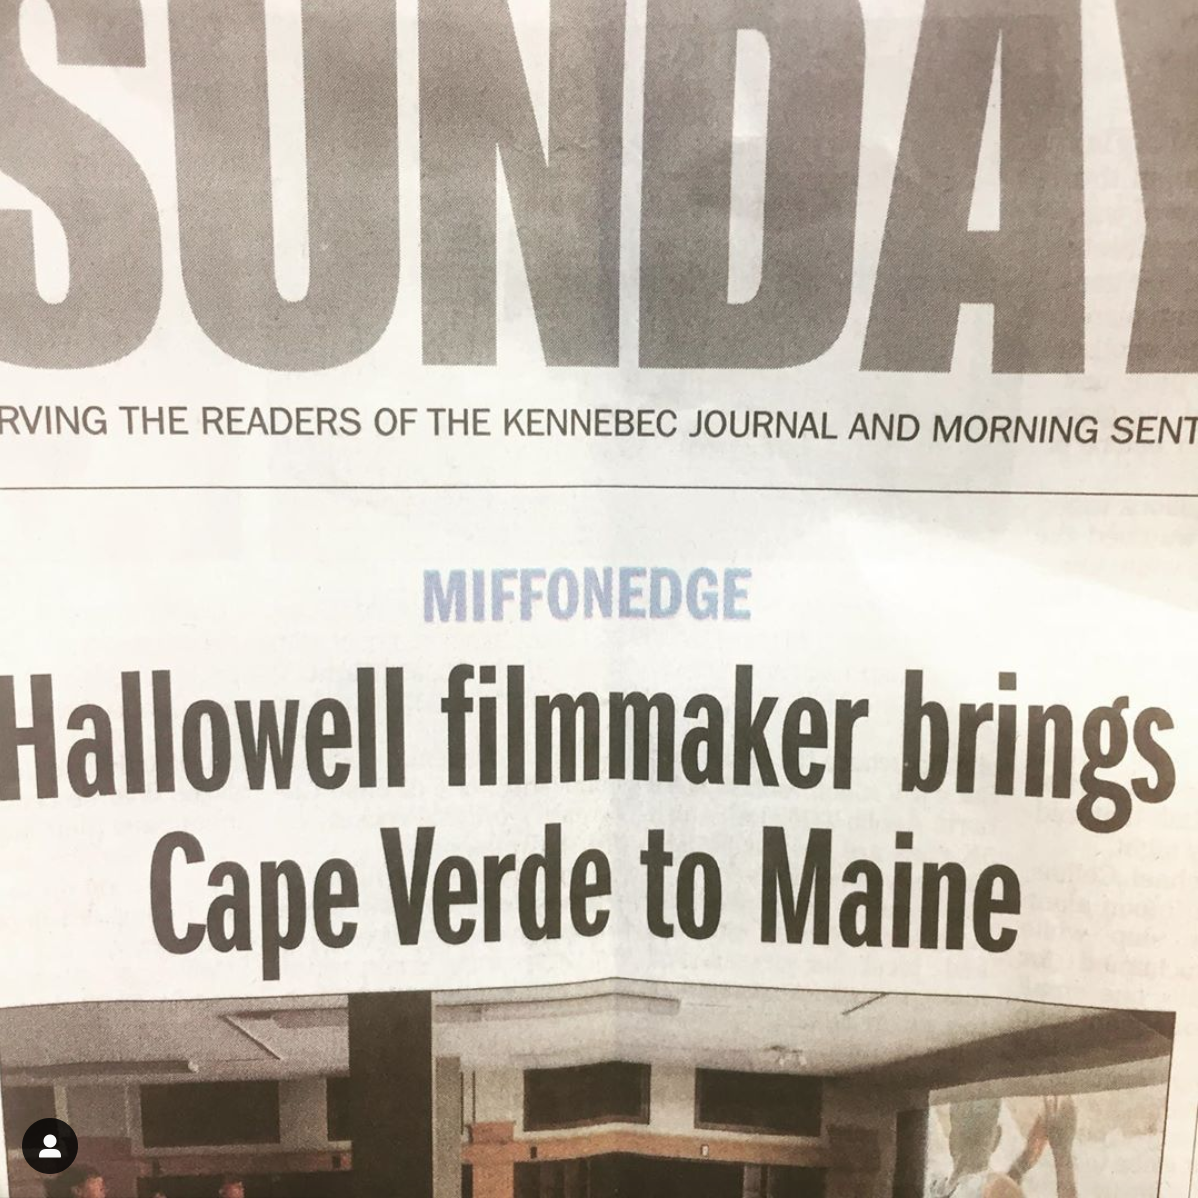 https://www.pressherald.com/2019/07/11/hallowell-filmmaker-brings-cape-verde-to-maine-2/